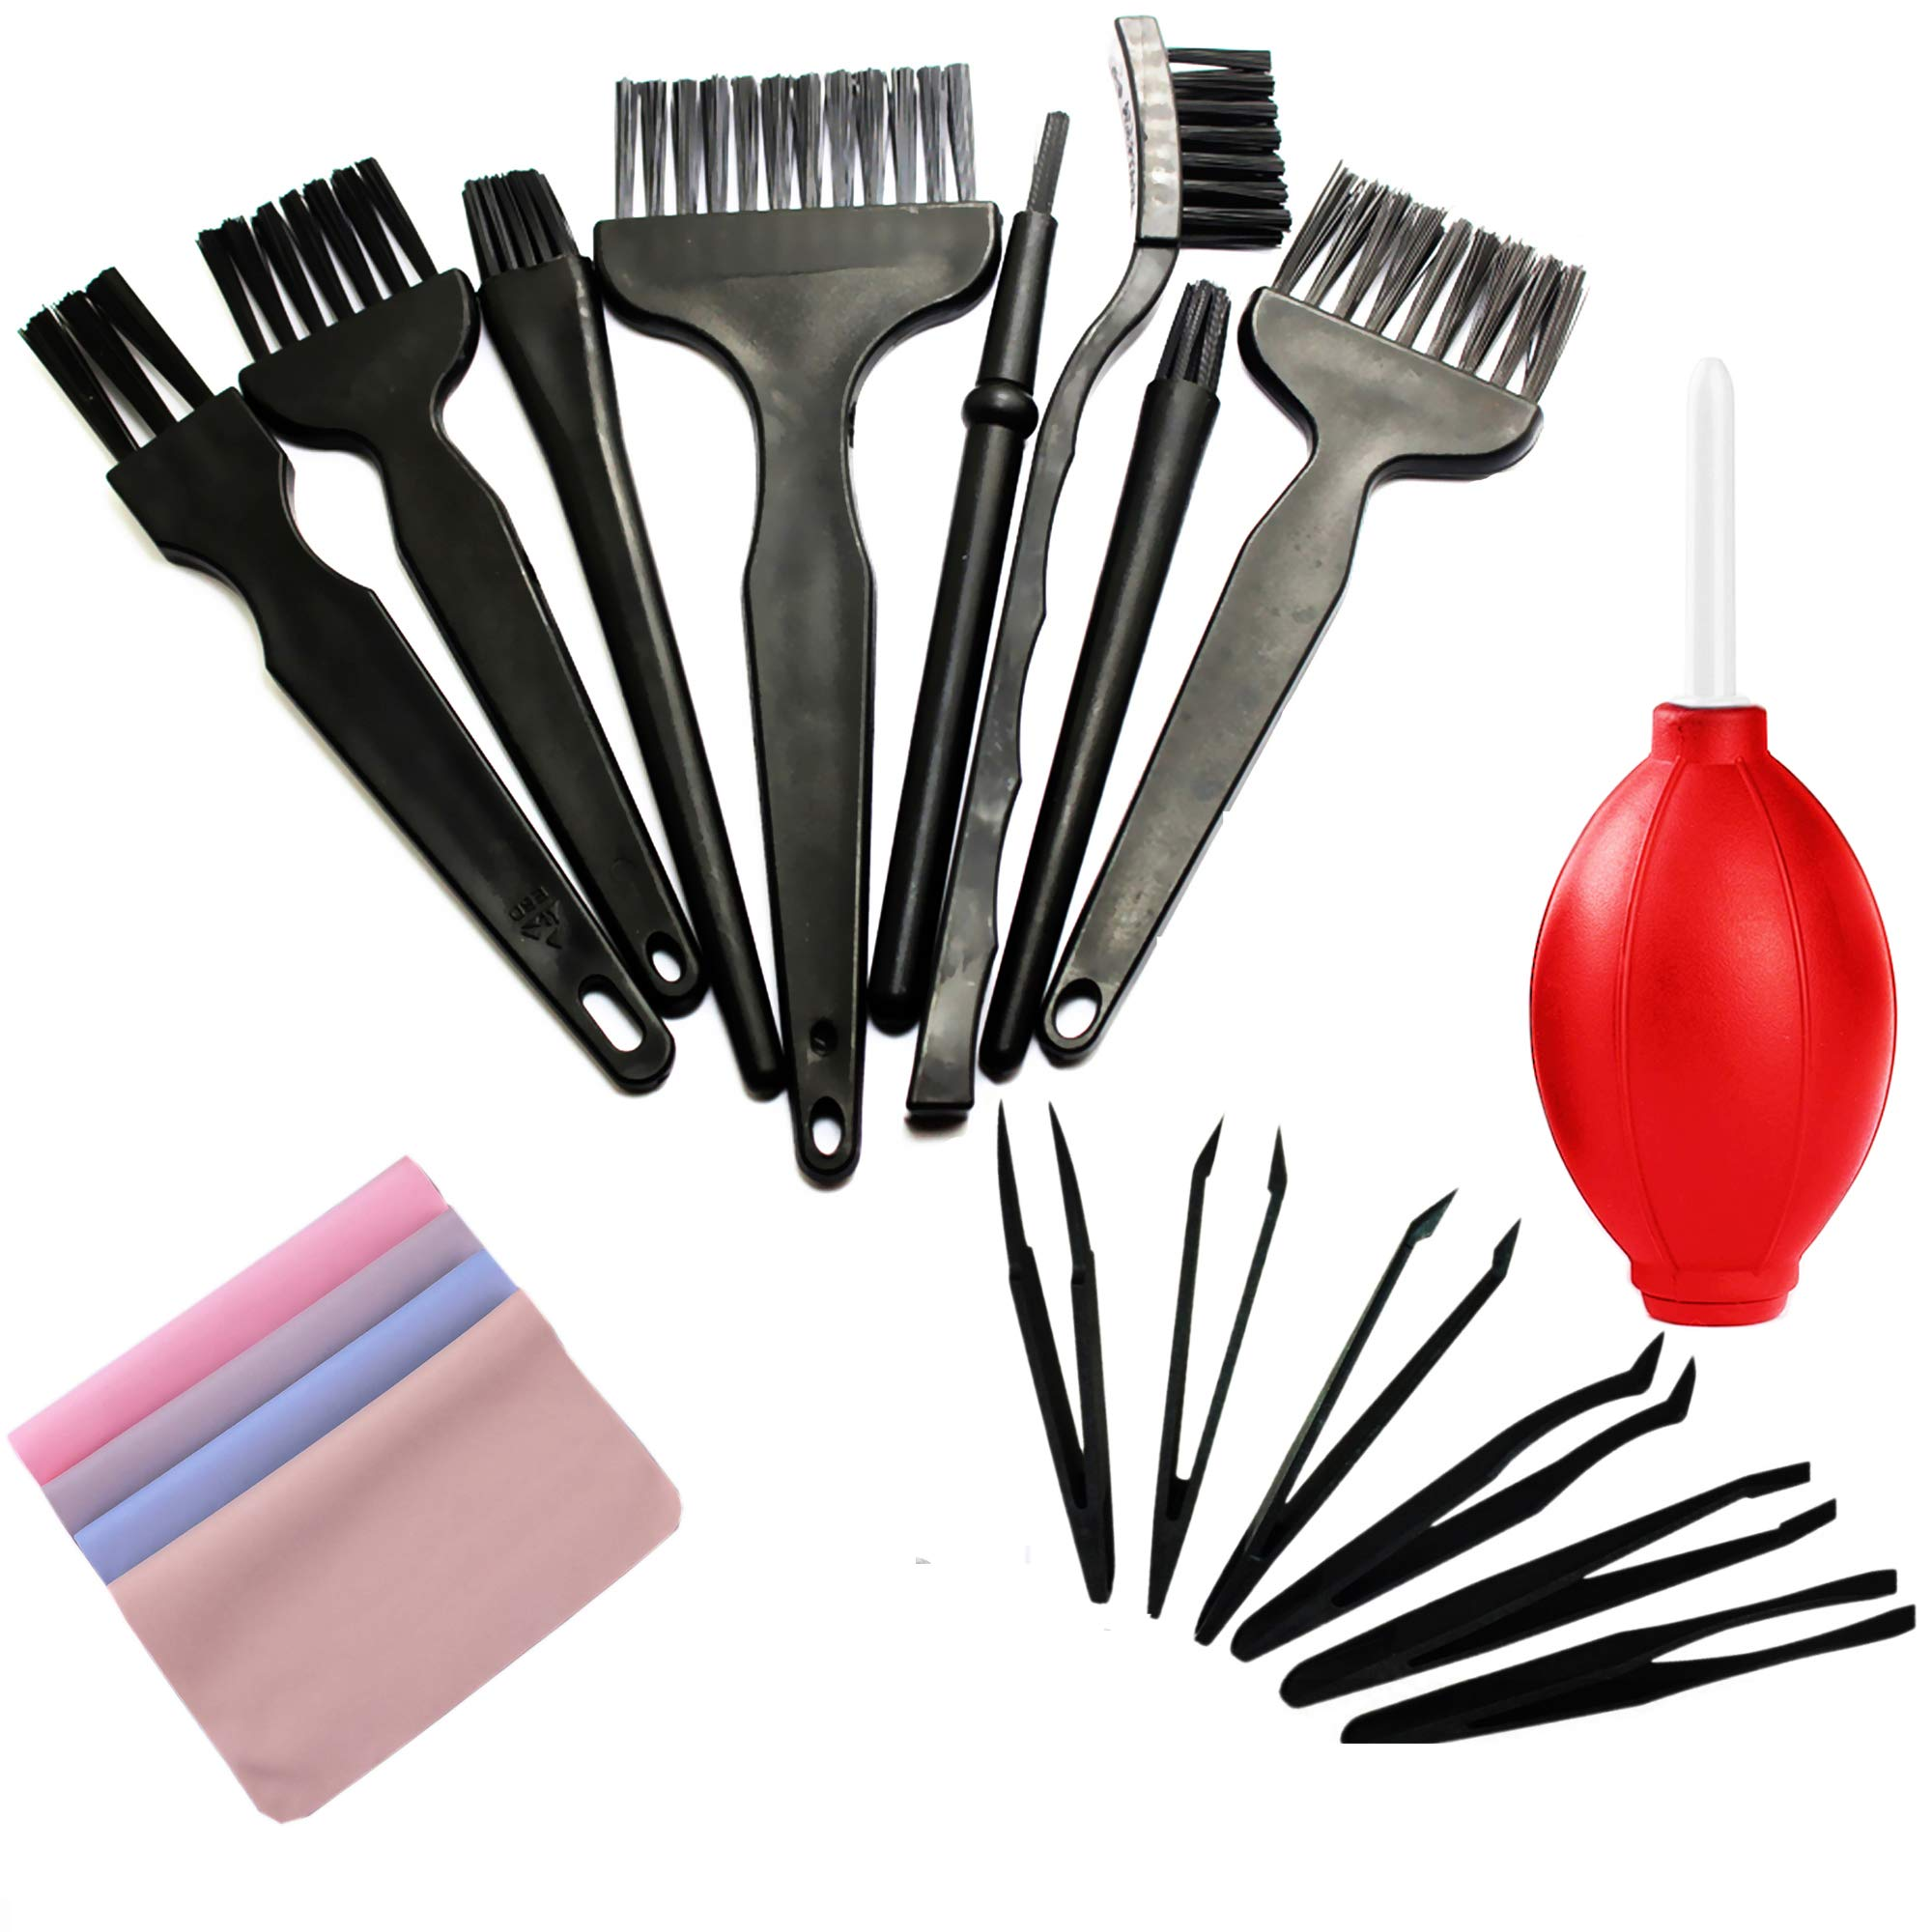 Small Anti Static ESD Safe Cleaning Dust Brush Kit for Phone Computer Keyboard Laptop Screen Camera Lens,ESD Precision Plastic Tweezers Set,Microfiber Cleaning Cloths,ESD Gloves,Air Blow Cleaner